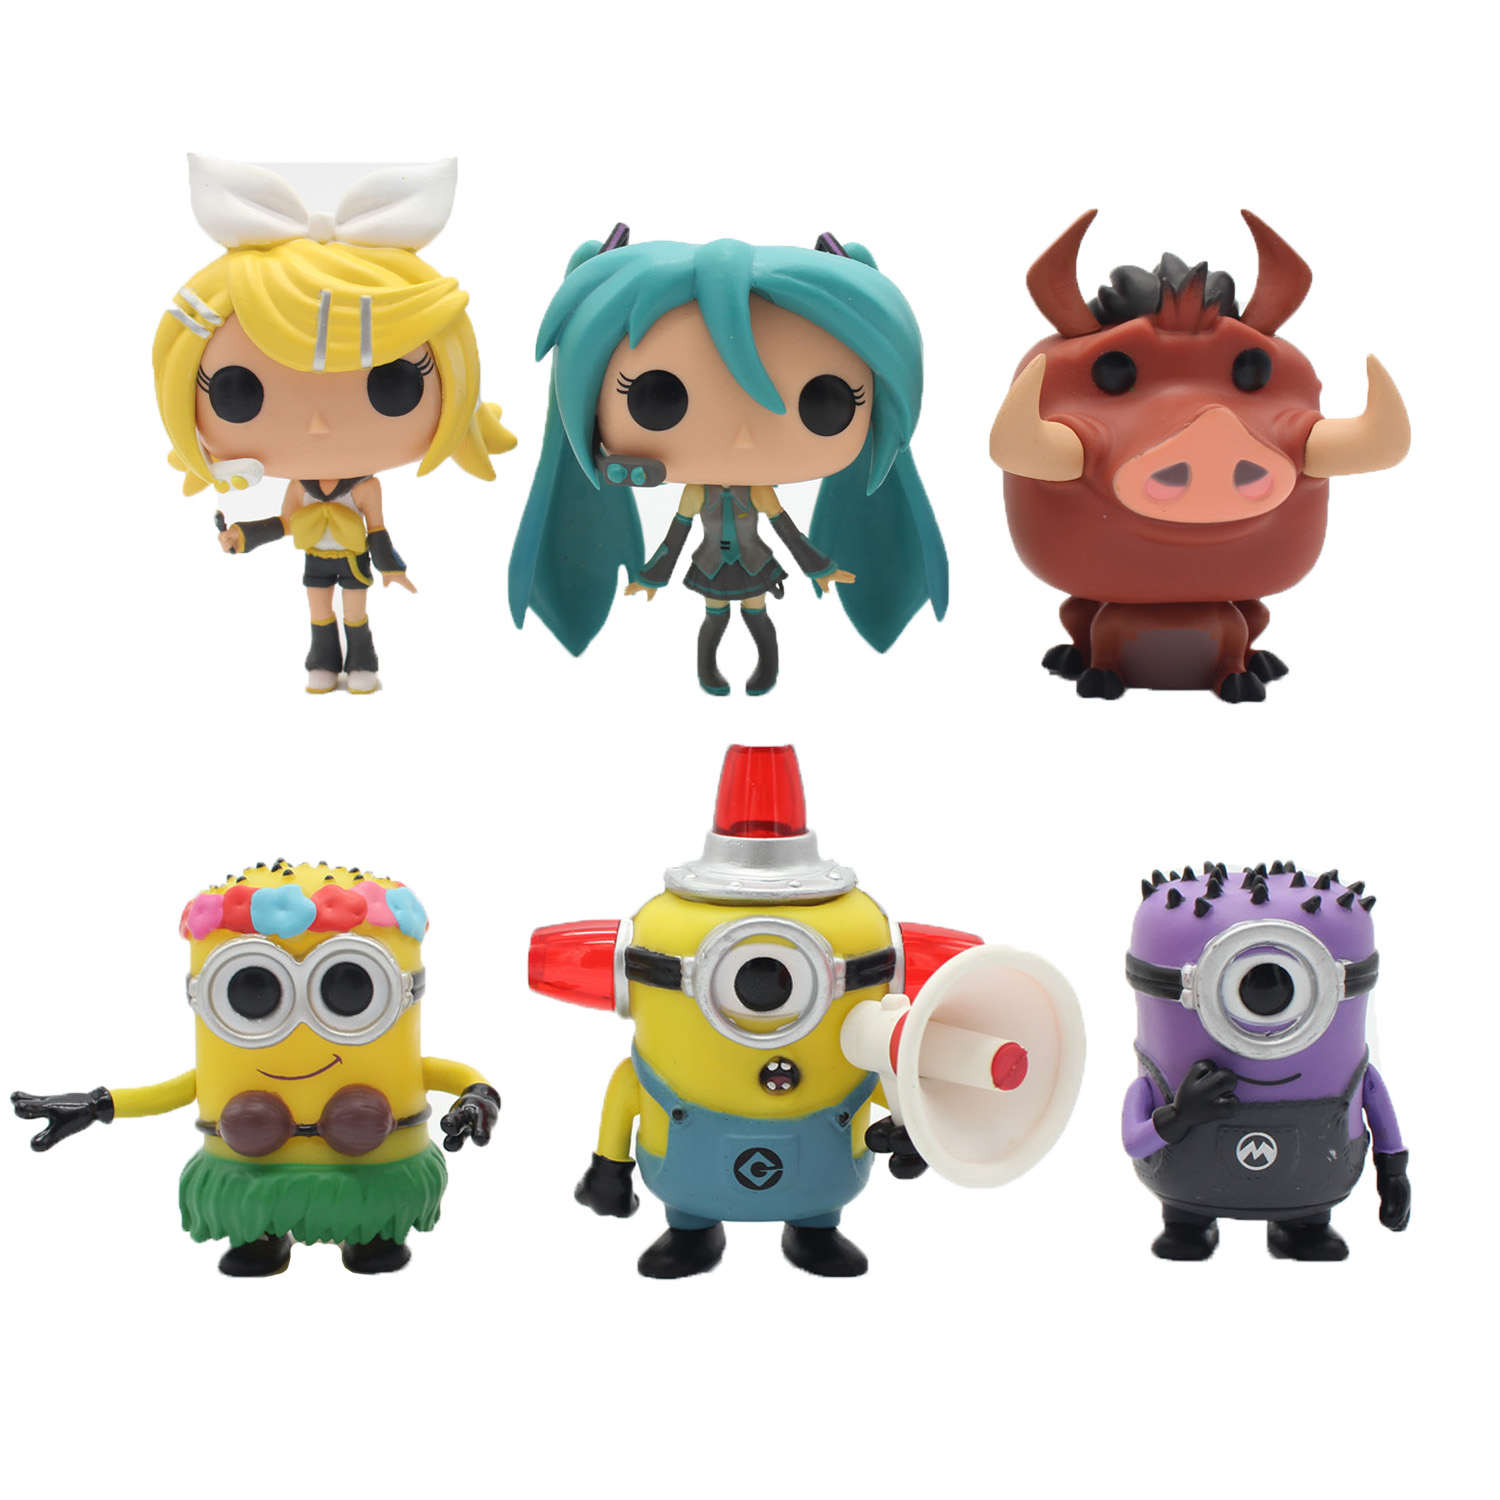 OPP 1pcs chanycore doll 7Style 2015 Kevin Hello Kitty Lion King Pumbaa Natural Hula Hatsune Miku Rin/Len Vinyl Figure toy(China (Mainland))